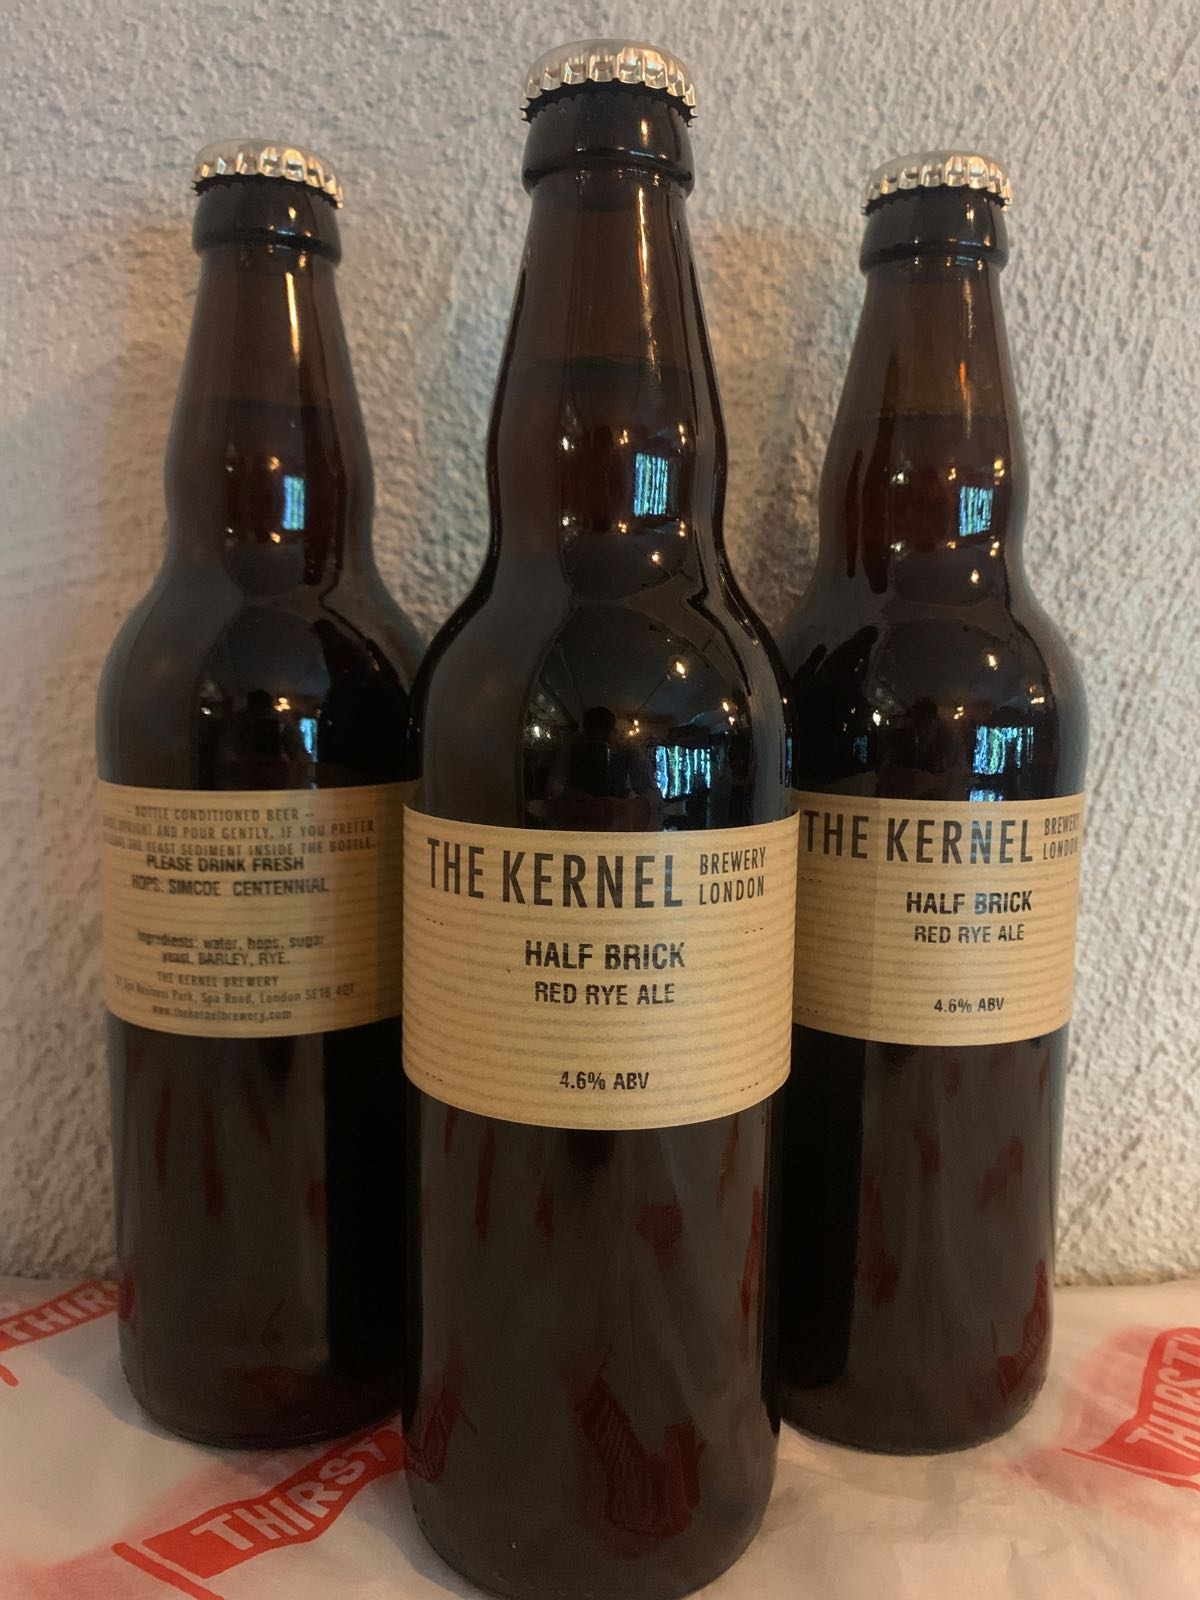 The Kernel | Half Brick | Red Rye Ale  4.6% 500ml